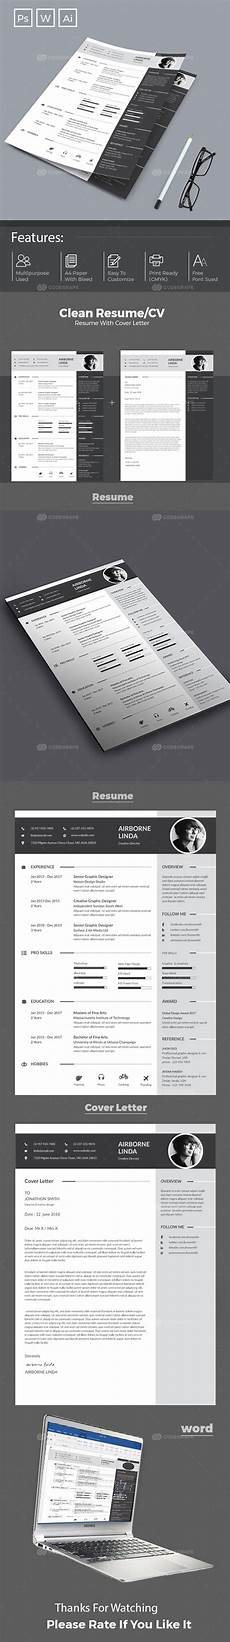 resume cv simple resume template resume cv resume